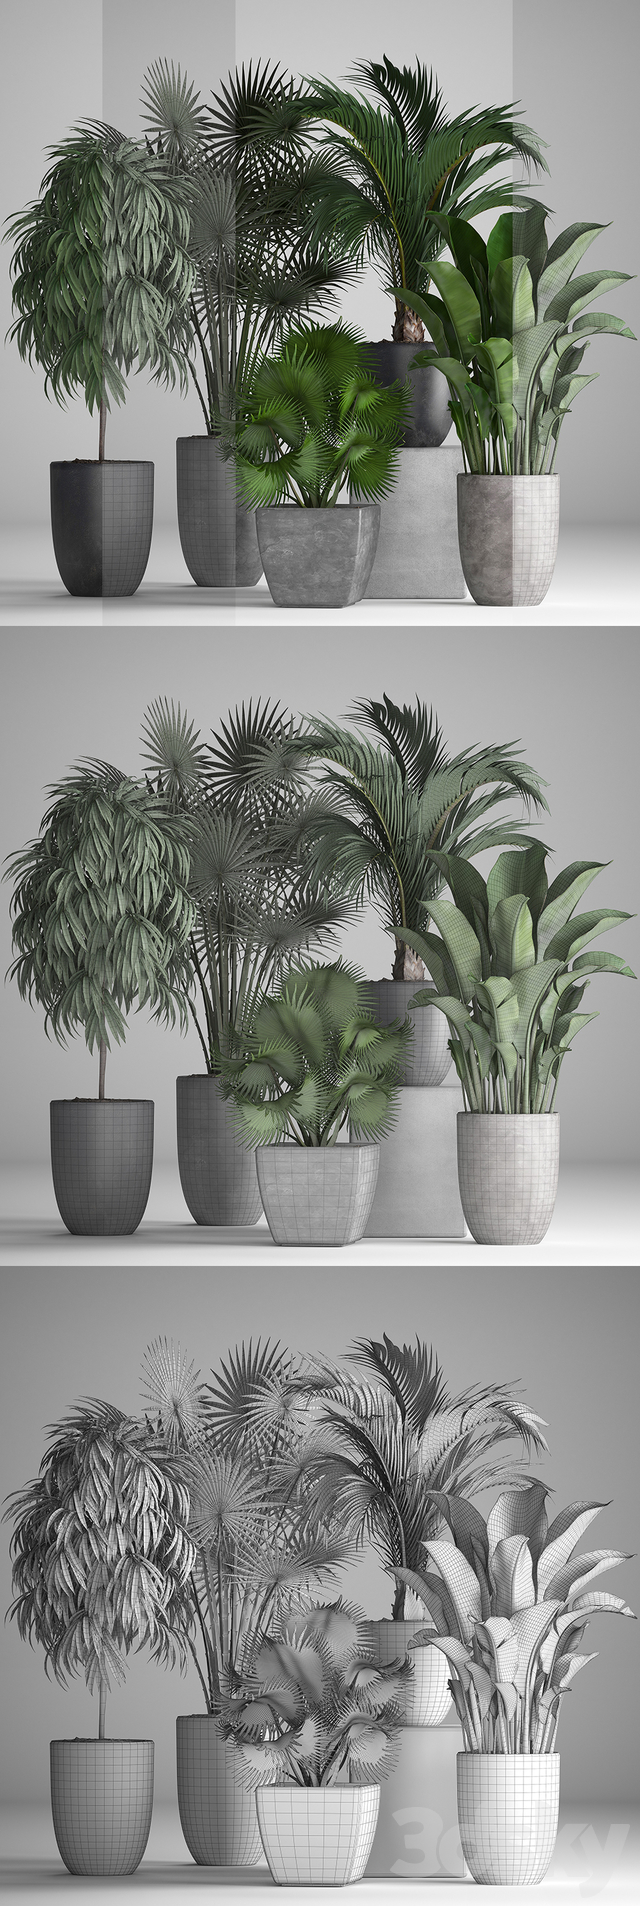 Plant collection 258.